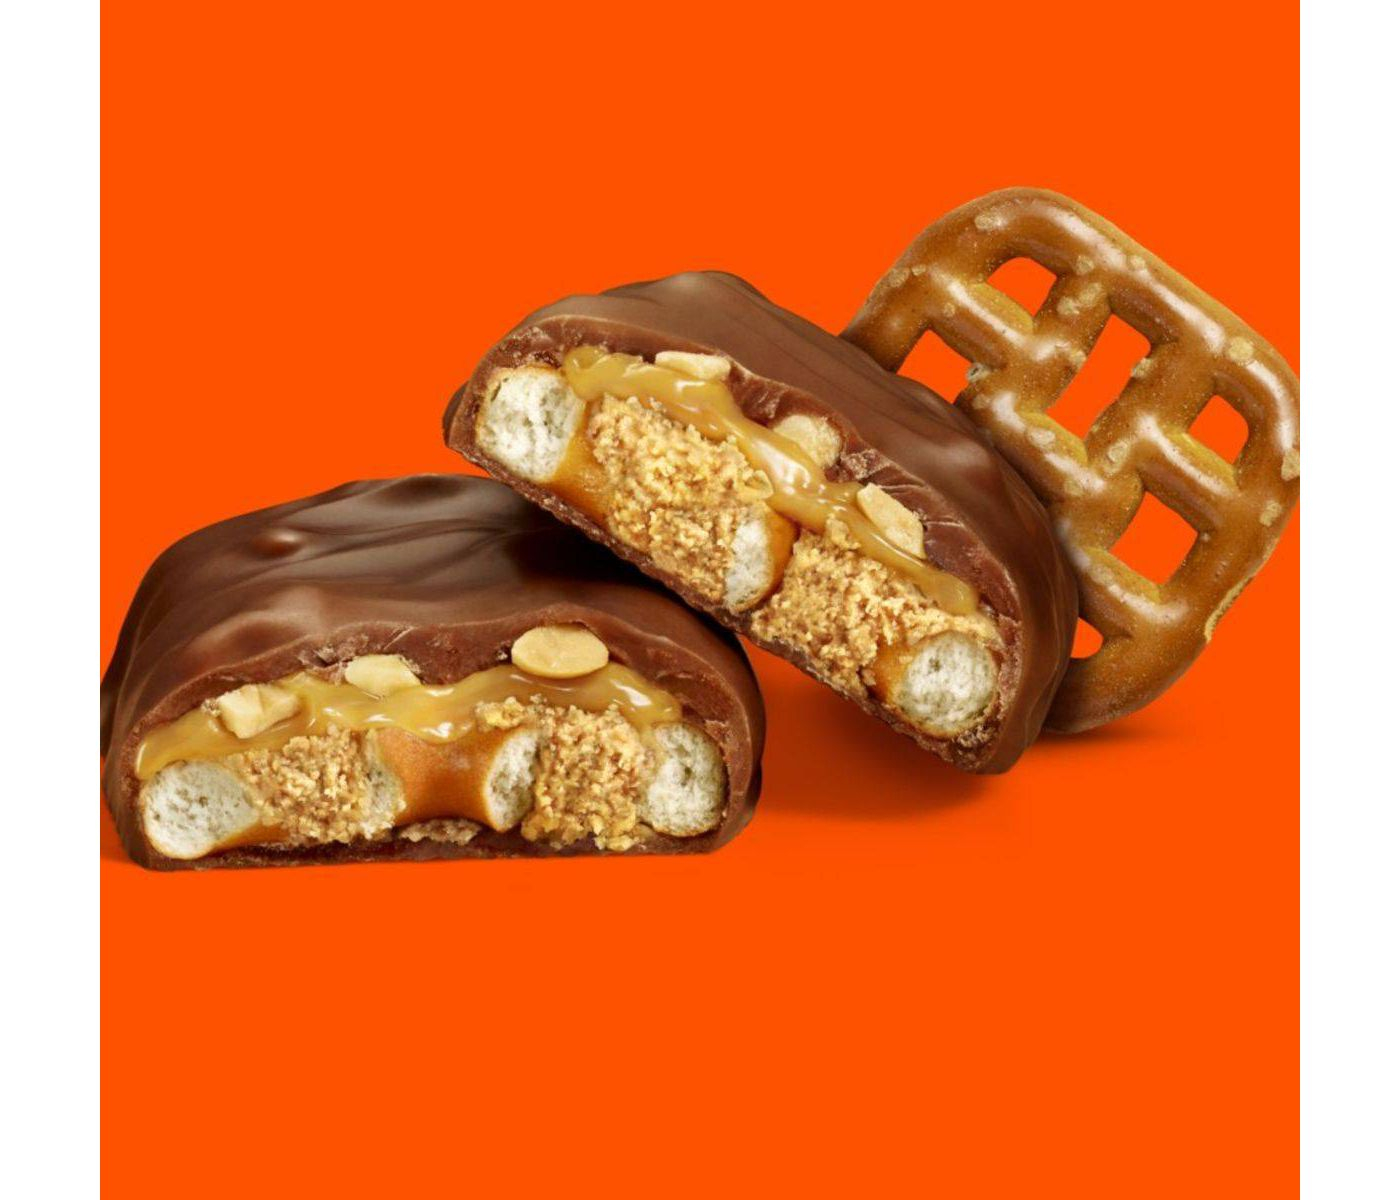 Reese's Take 5 Snack Size Candy Bars, 11.25oz